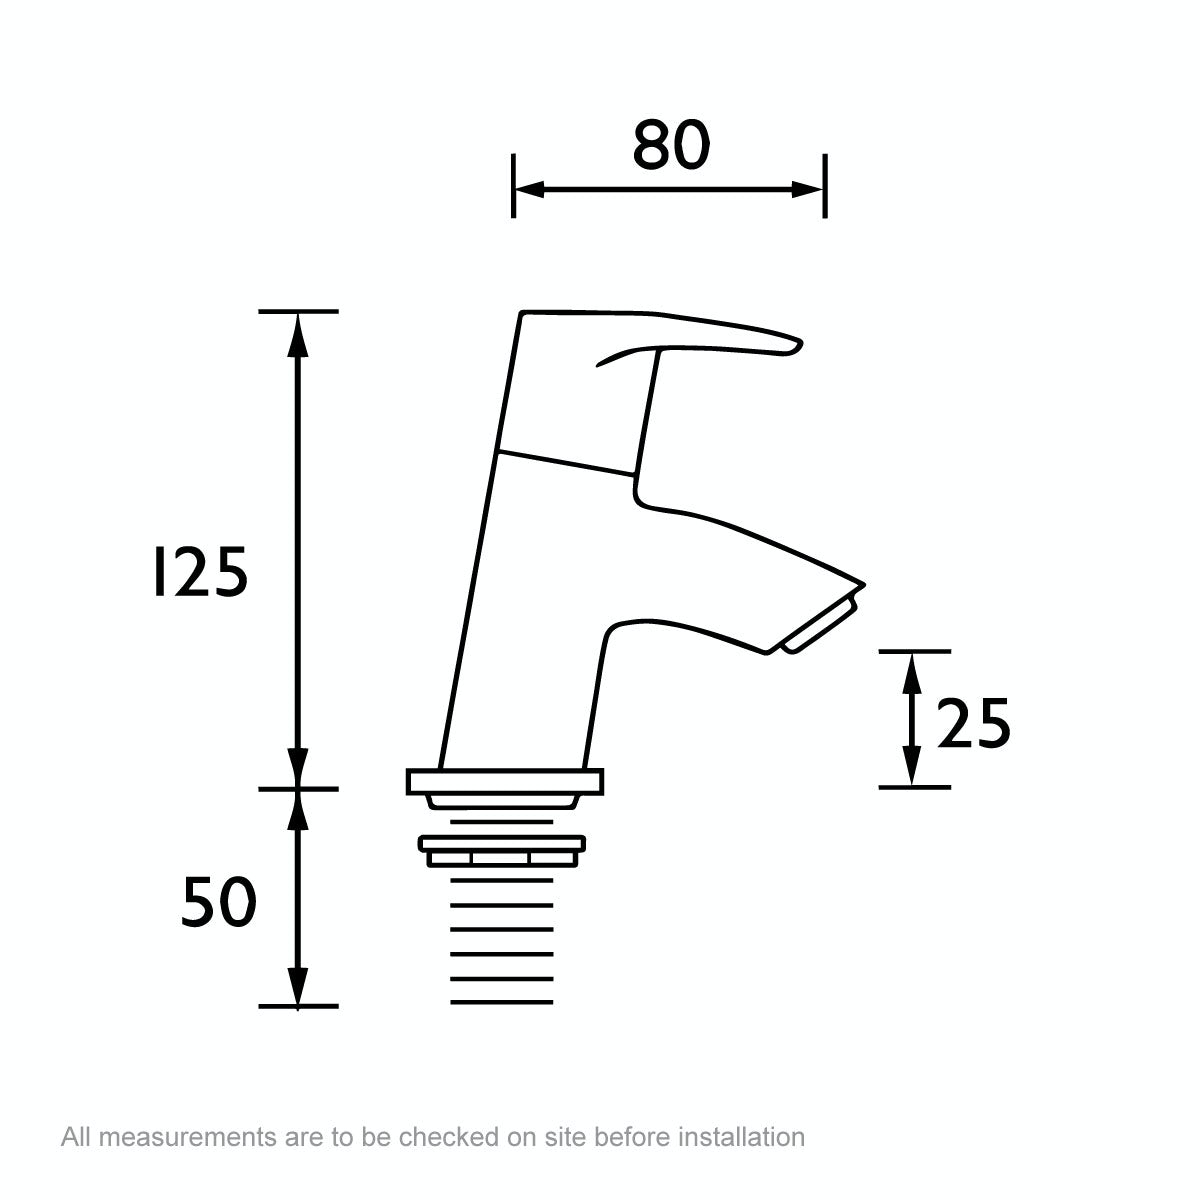 Dimensions for Bristan Smile bath taps